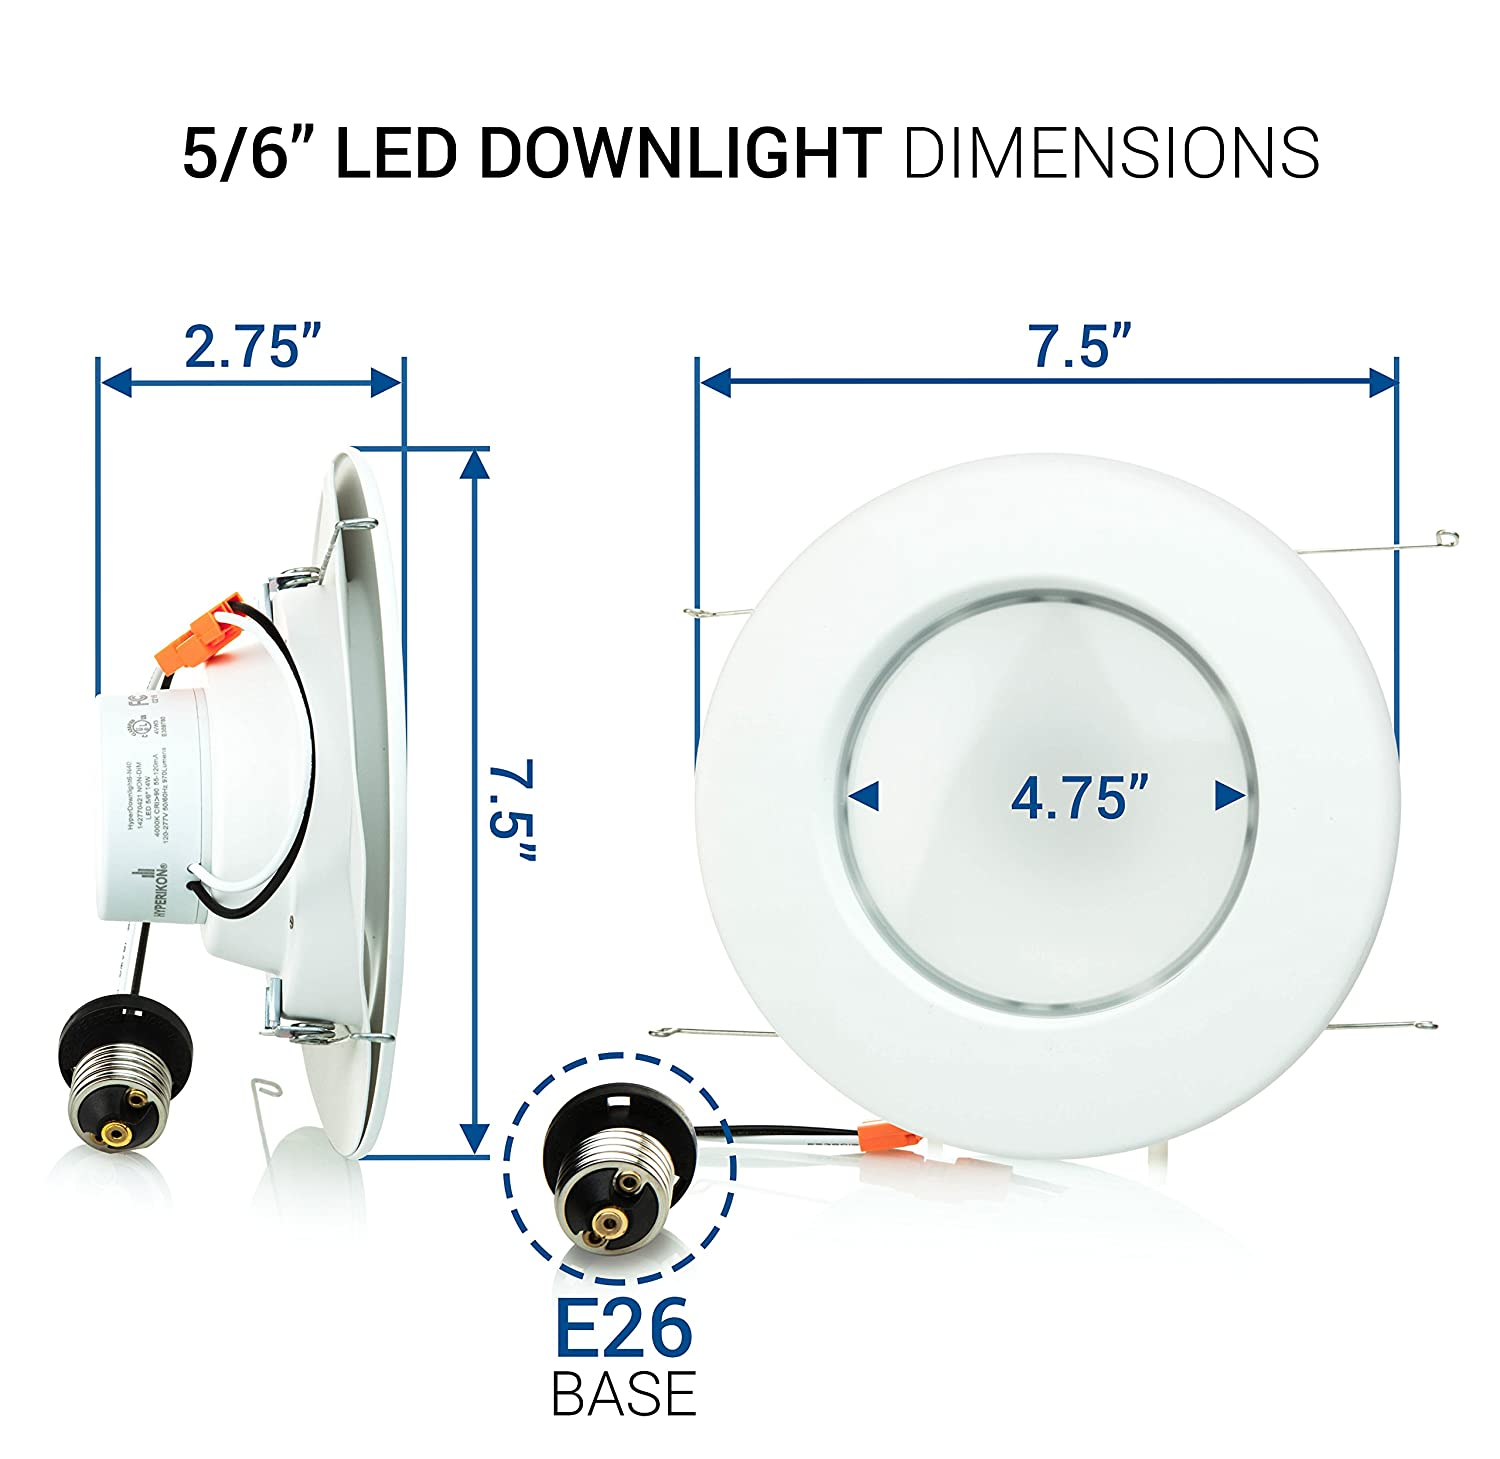 Hyperikon 6 Inch Led Downlight 5 Compatible Dimmable 14w Wiring Circuit Downlights 75w Replacement Retrofit Recessed Lighting Fixture 4000k Daylight Glow Cri94